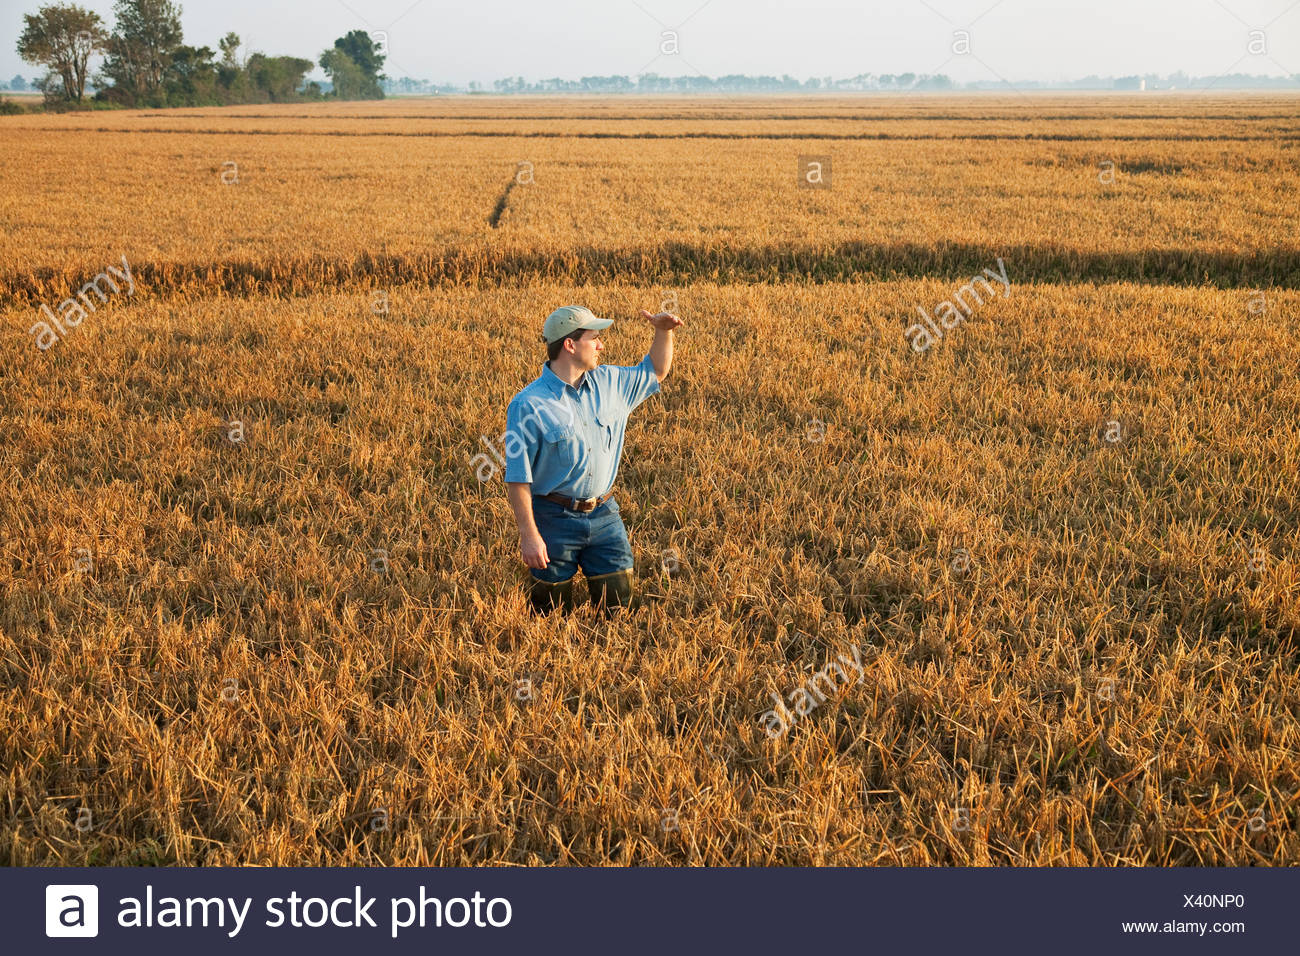 A farmer (grower) standing in his field inspects his nearly mature rice crop in order to determine when the harvest will begin. - Stock Image